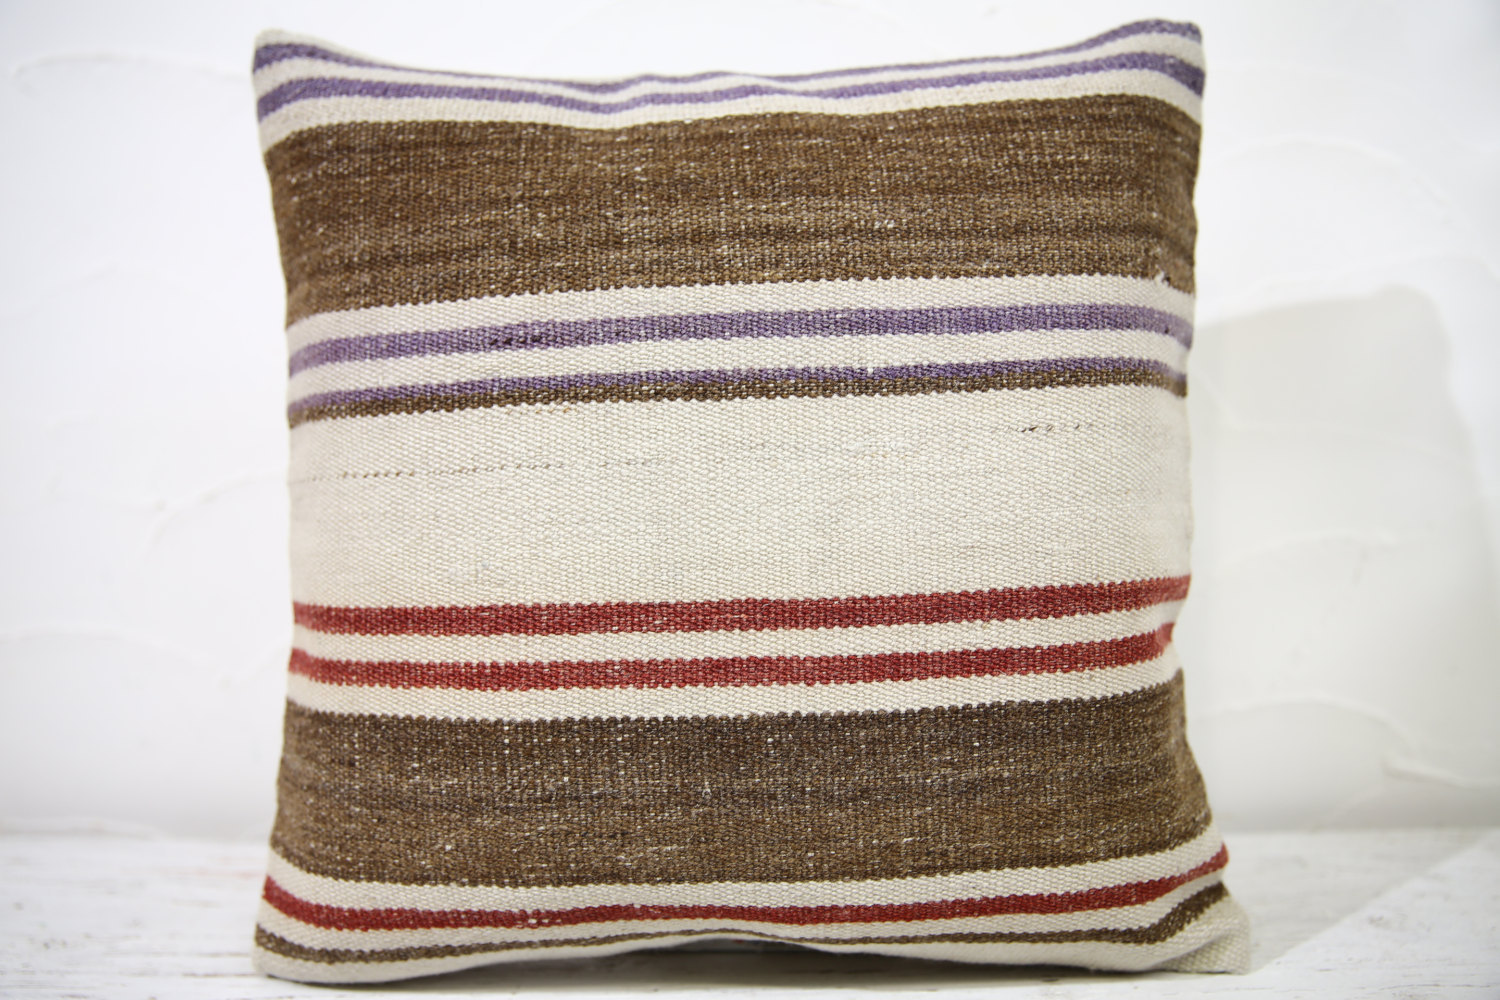 Kilim Pillows |16x16 | Decorative Pillows | 748 | Accent Pillows ,turkish pillow